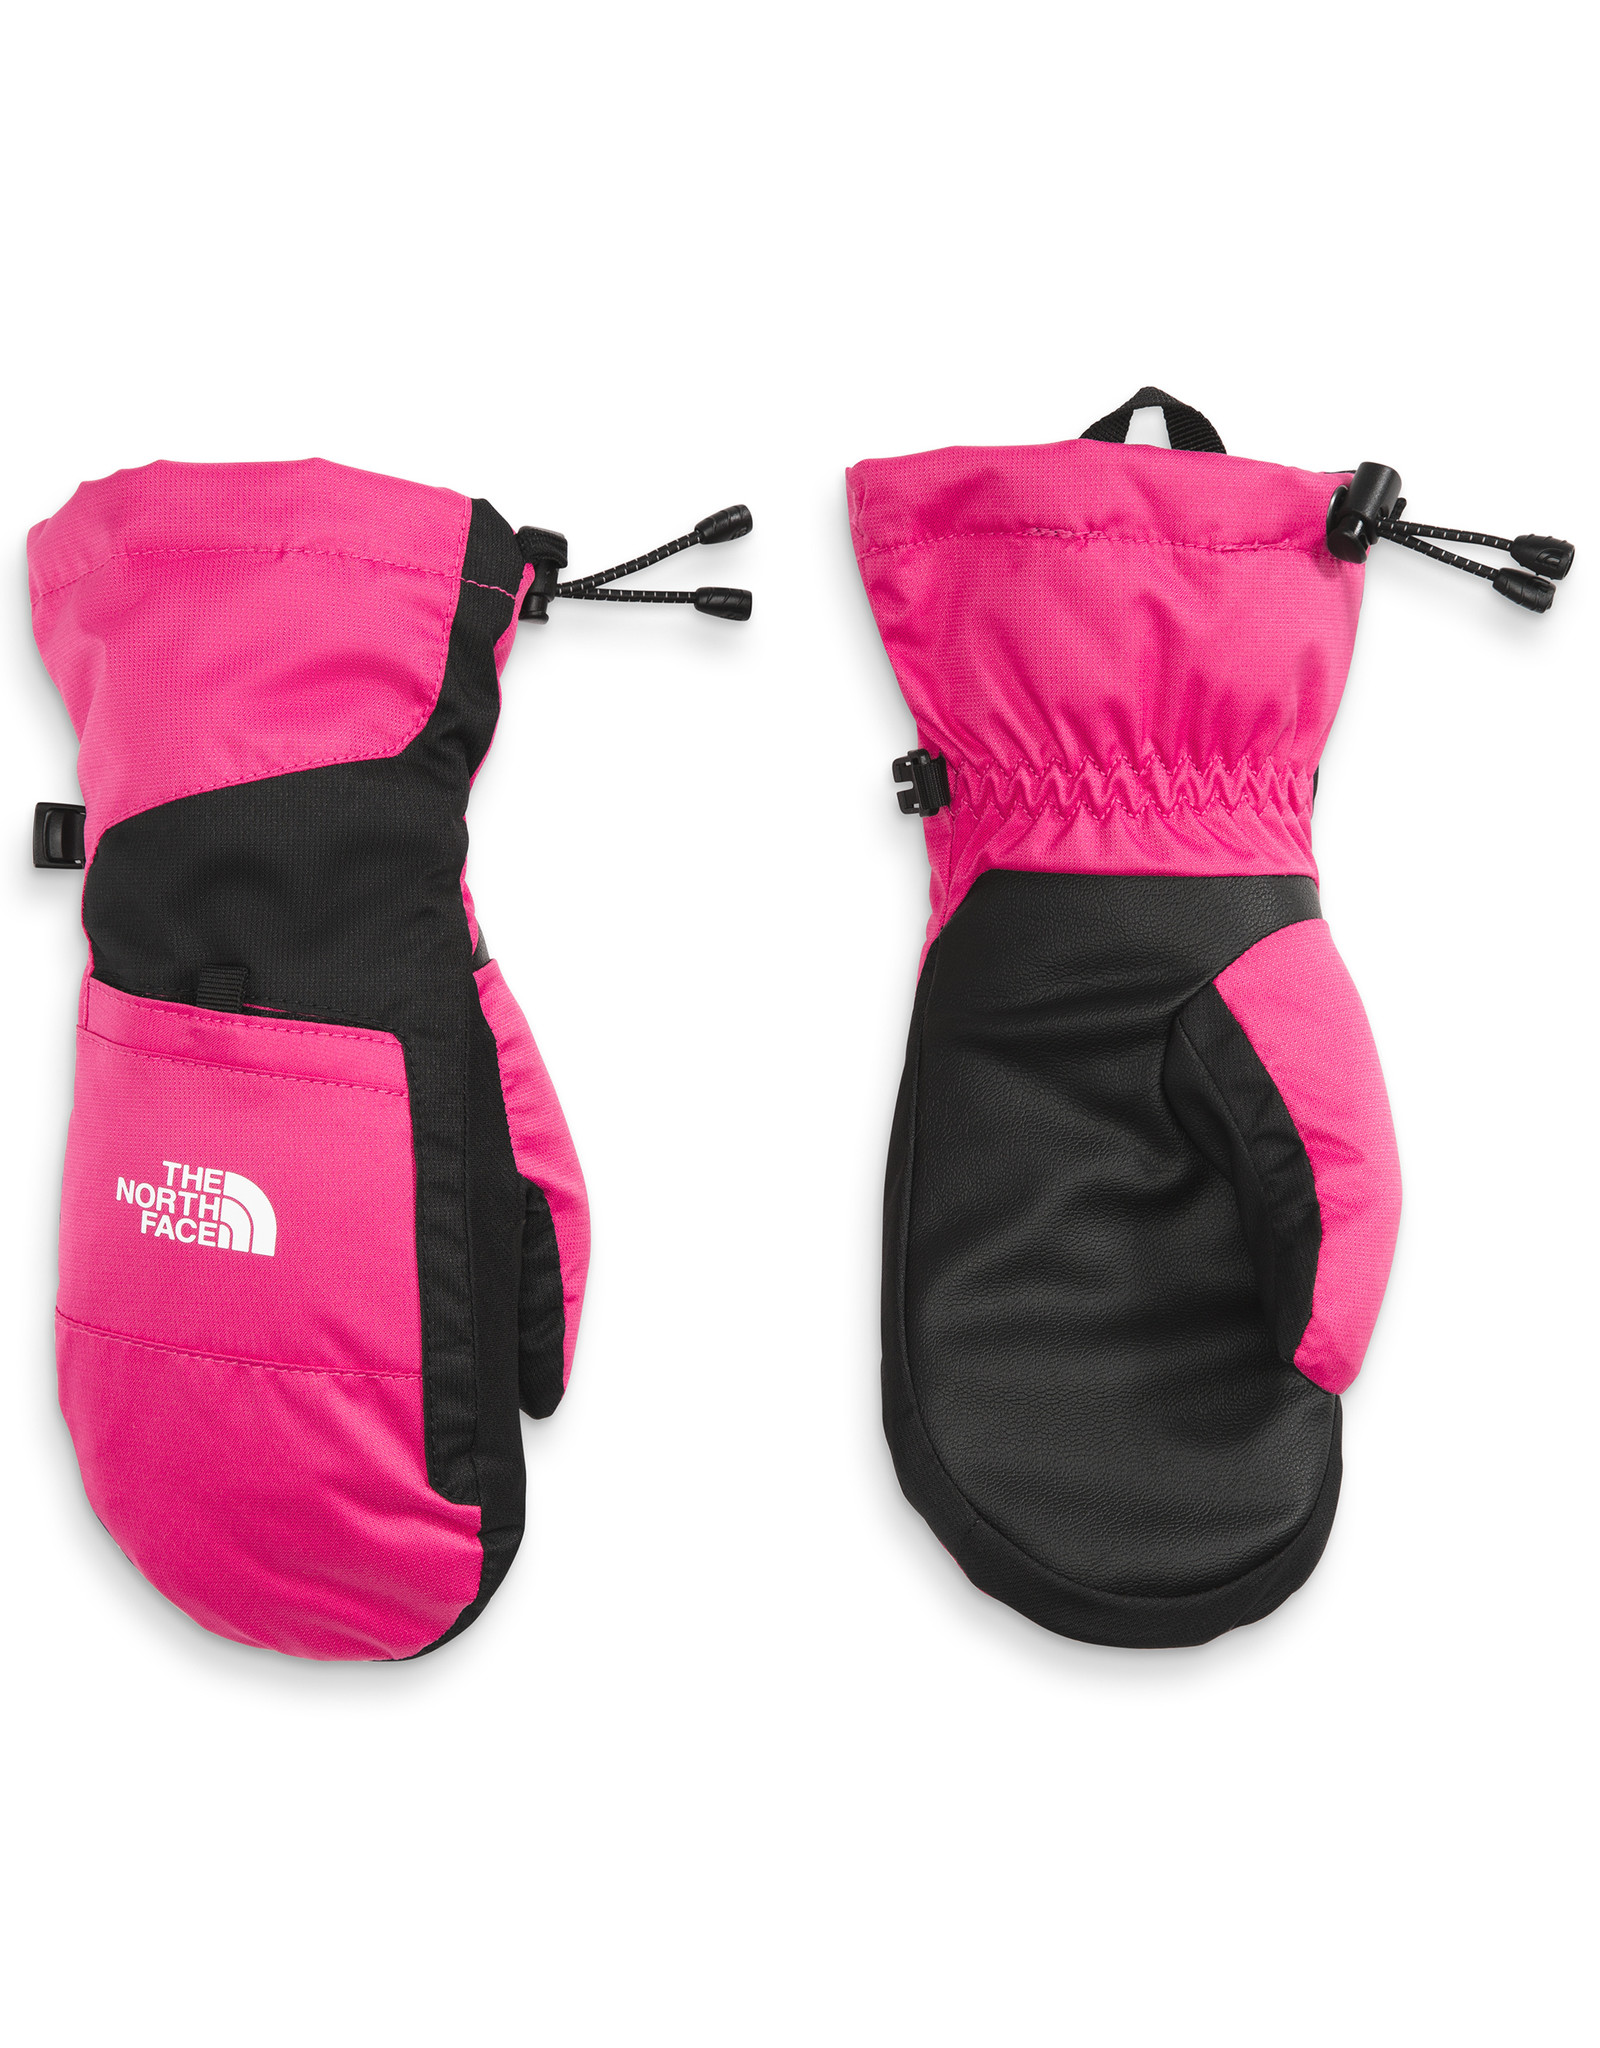 The North Face The North Face Youth Montana FUTURELIGHT™ Mitt -W2022